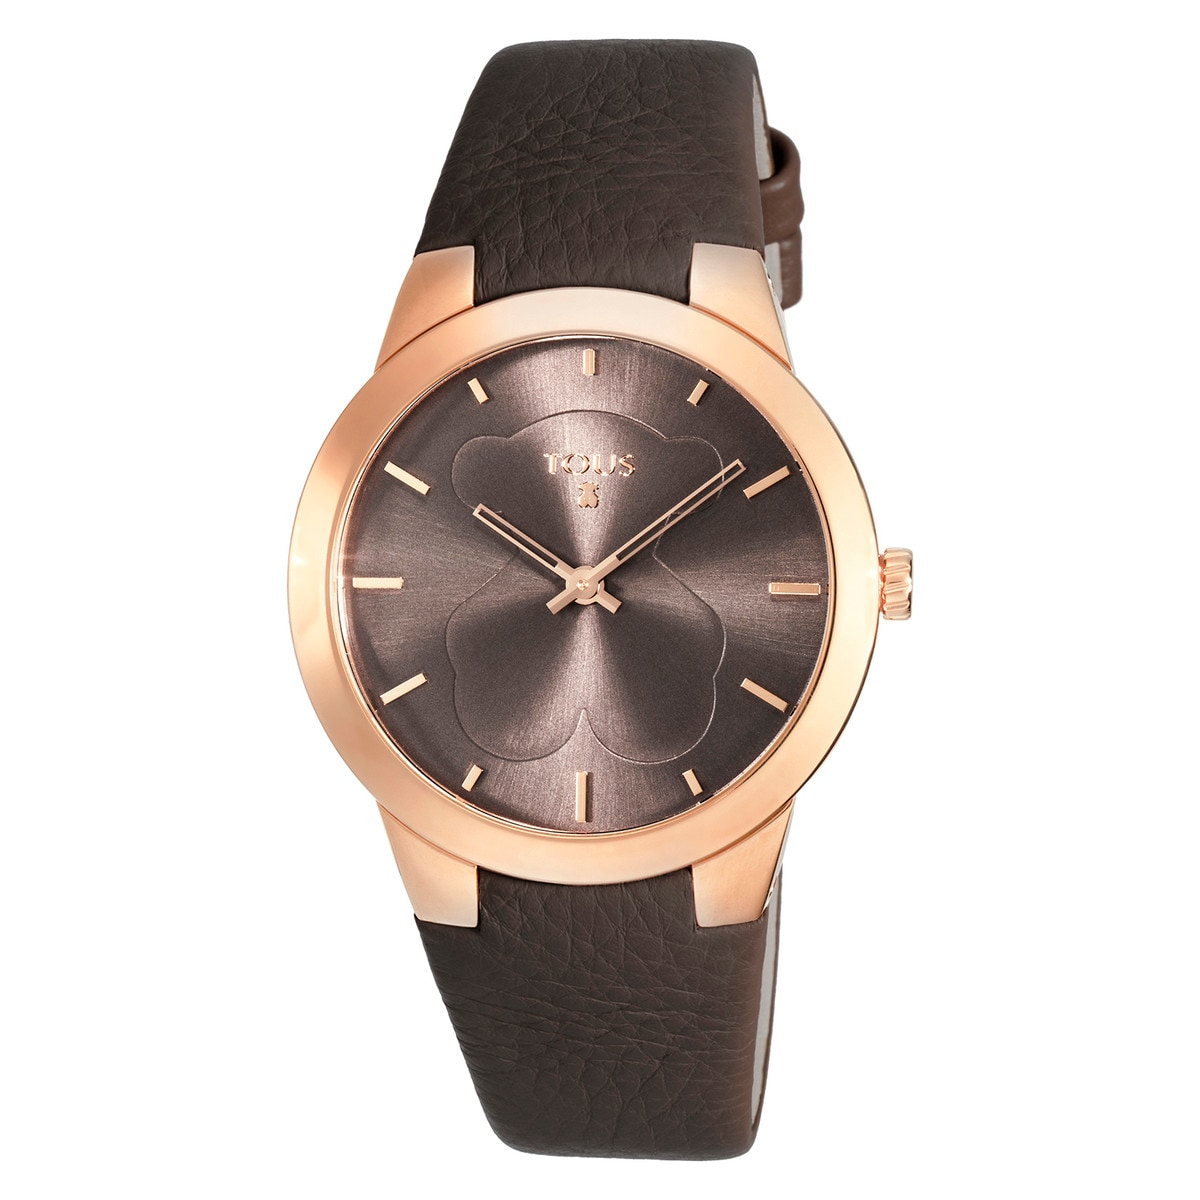 Pink IP Steel B-Face Watch with brown Leather strap